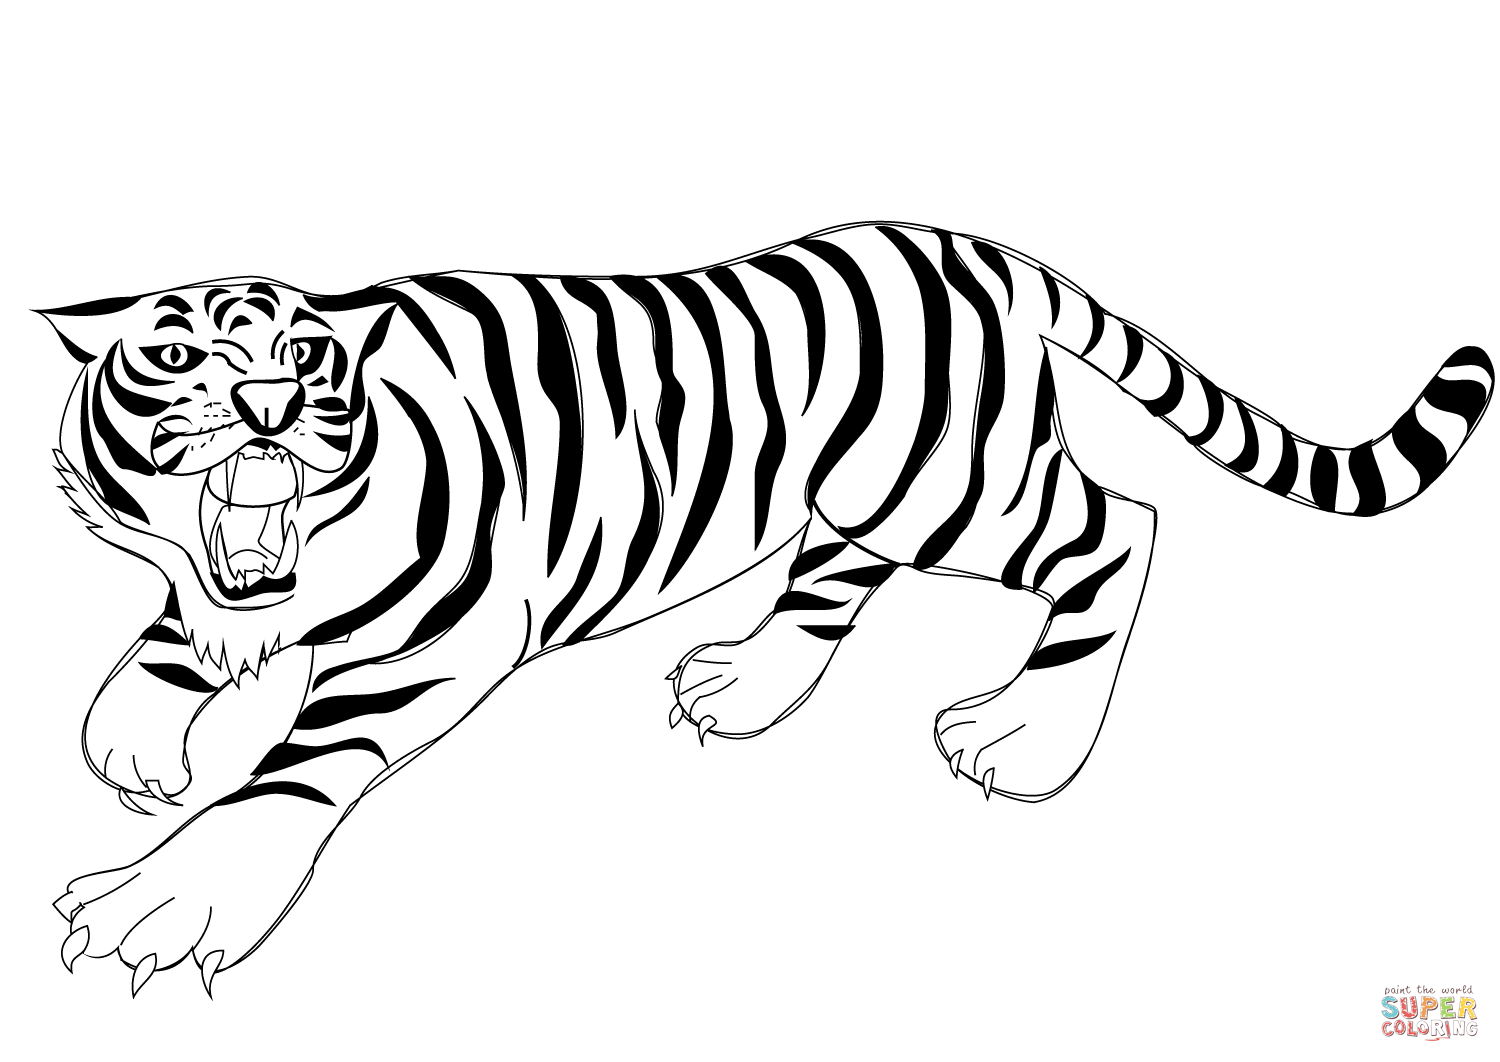 Advanced Tiger Coloring Pages : Tiger outlinecoloring page clipart best